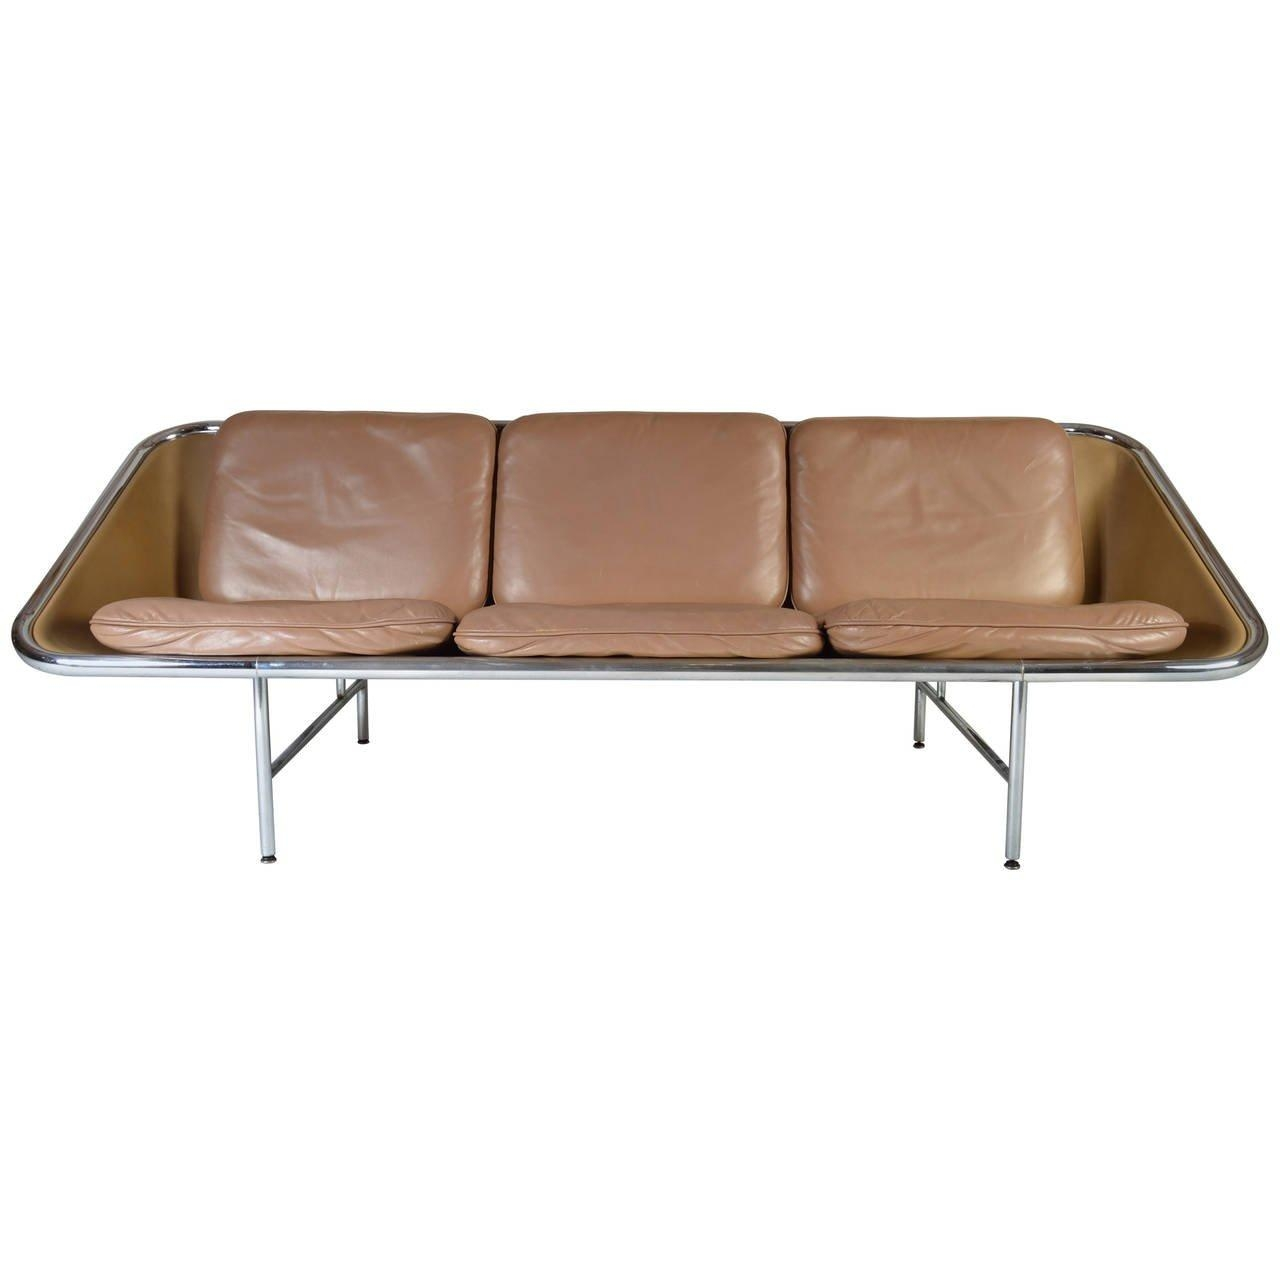 George Nelson Sling Sofa For Herman Miller At 1Stdibs Throughout George Nelson Sofas (View 19 of 20)